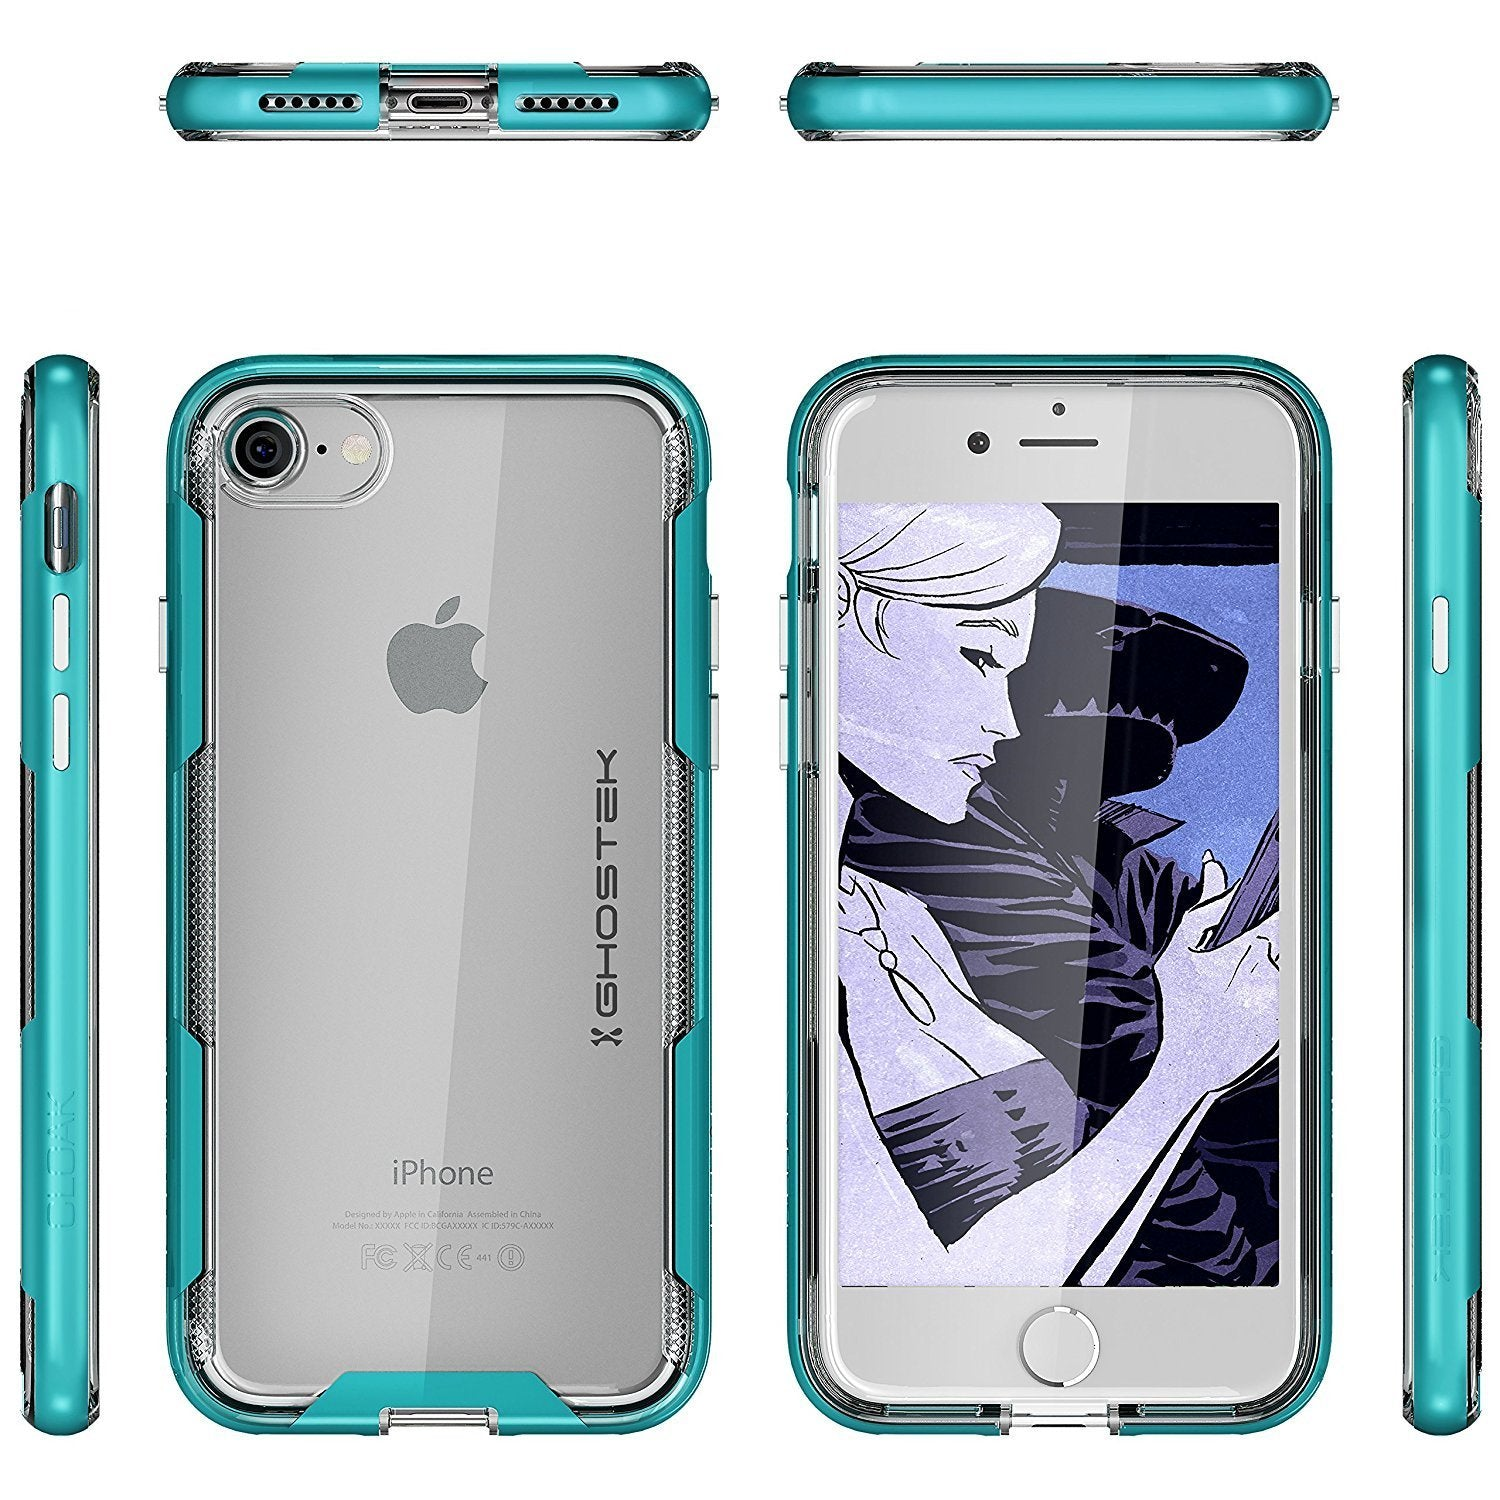 iPhone 7 Case, Ghostek Cloak 3 Series for iPhone 7 Clear Protective Case | Teal